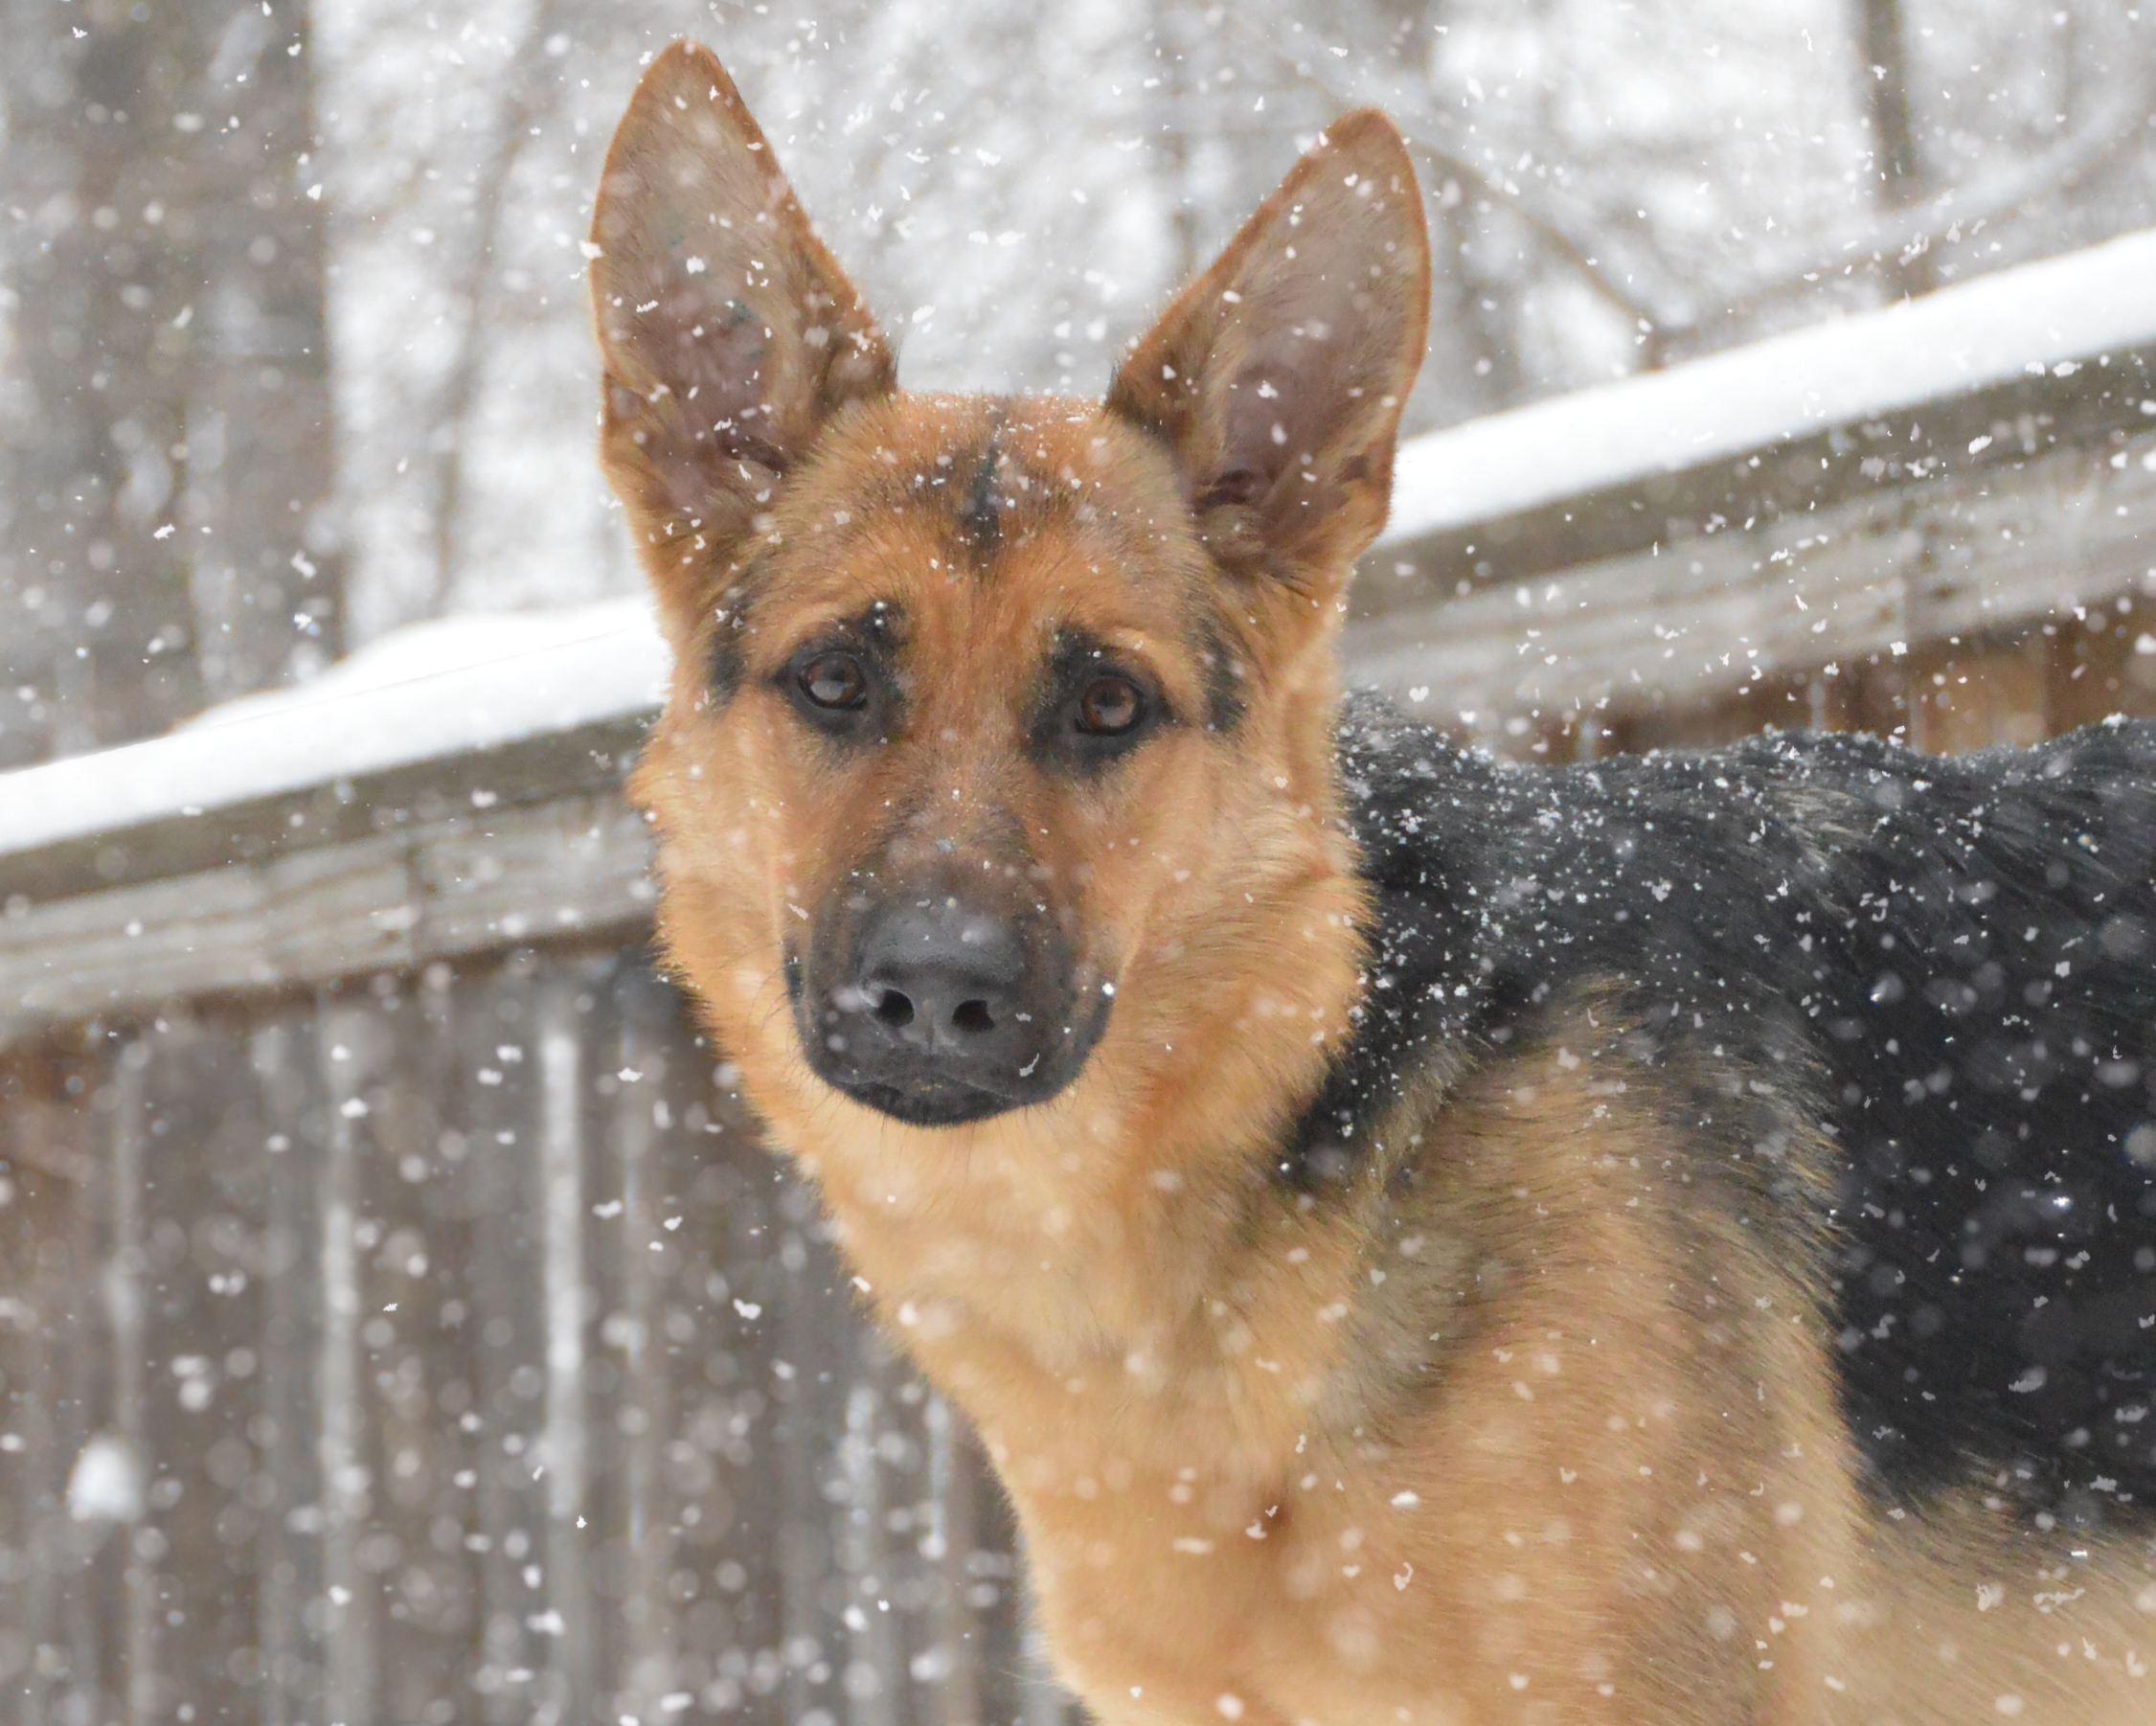 A German shepherd Seeing Eye puppy stands in the snow.